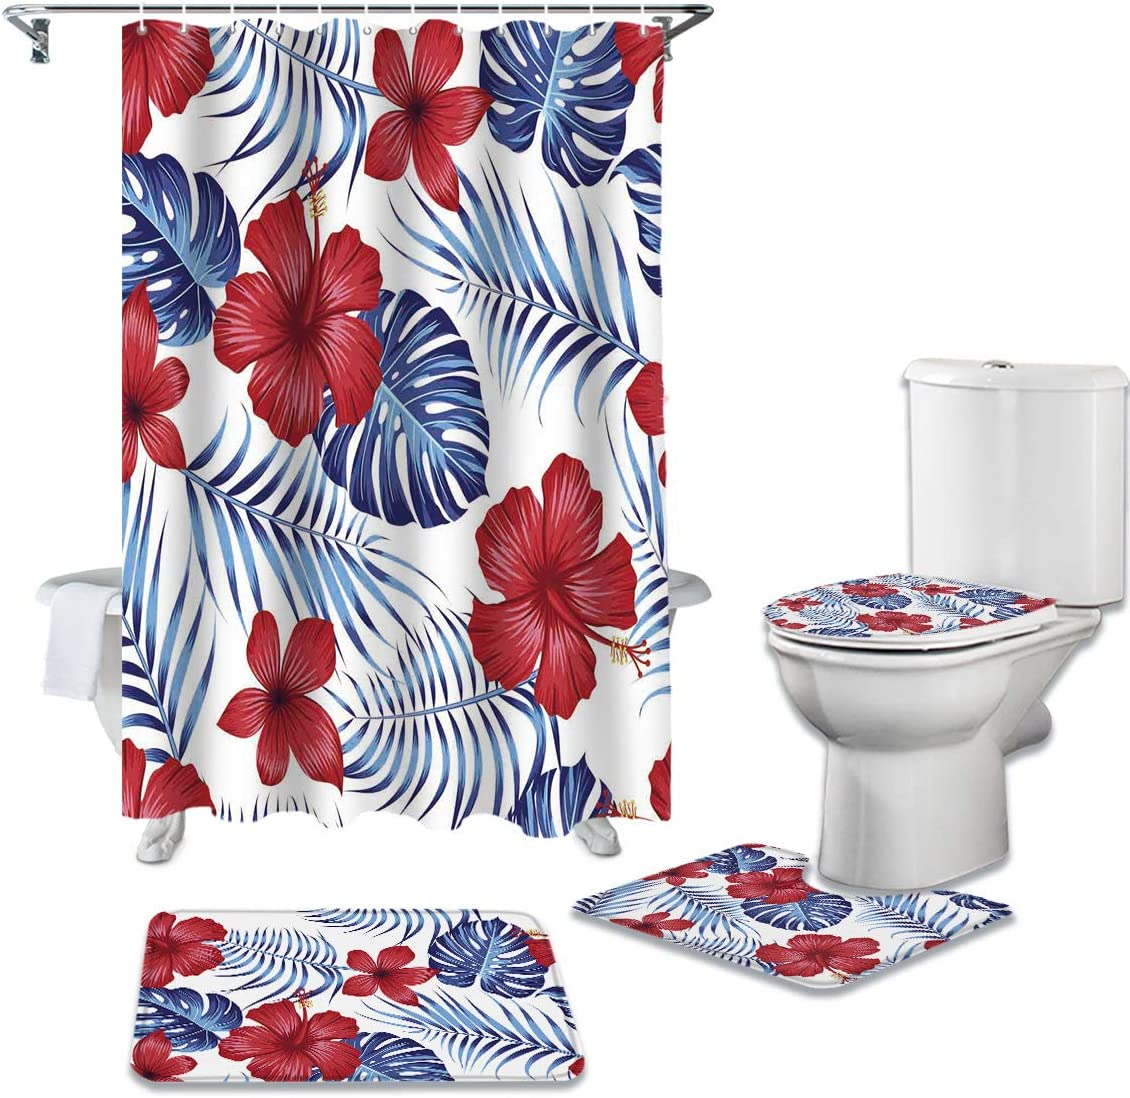 CHARMHOME 4 Piece Shower Curtain Non-Slip with Rug Toilet Sets Max Ranking TOP10 44% OFF